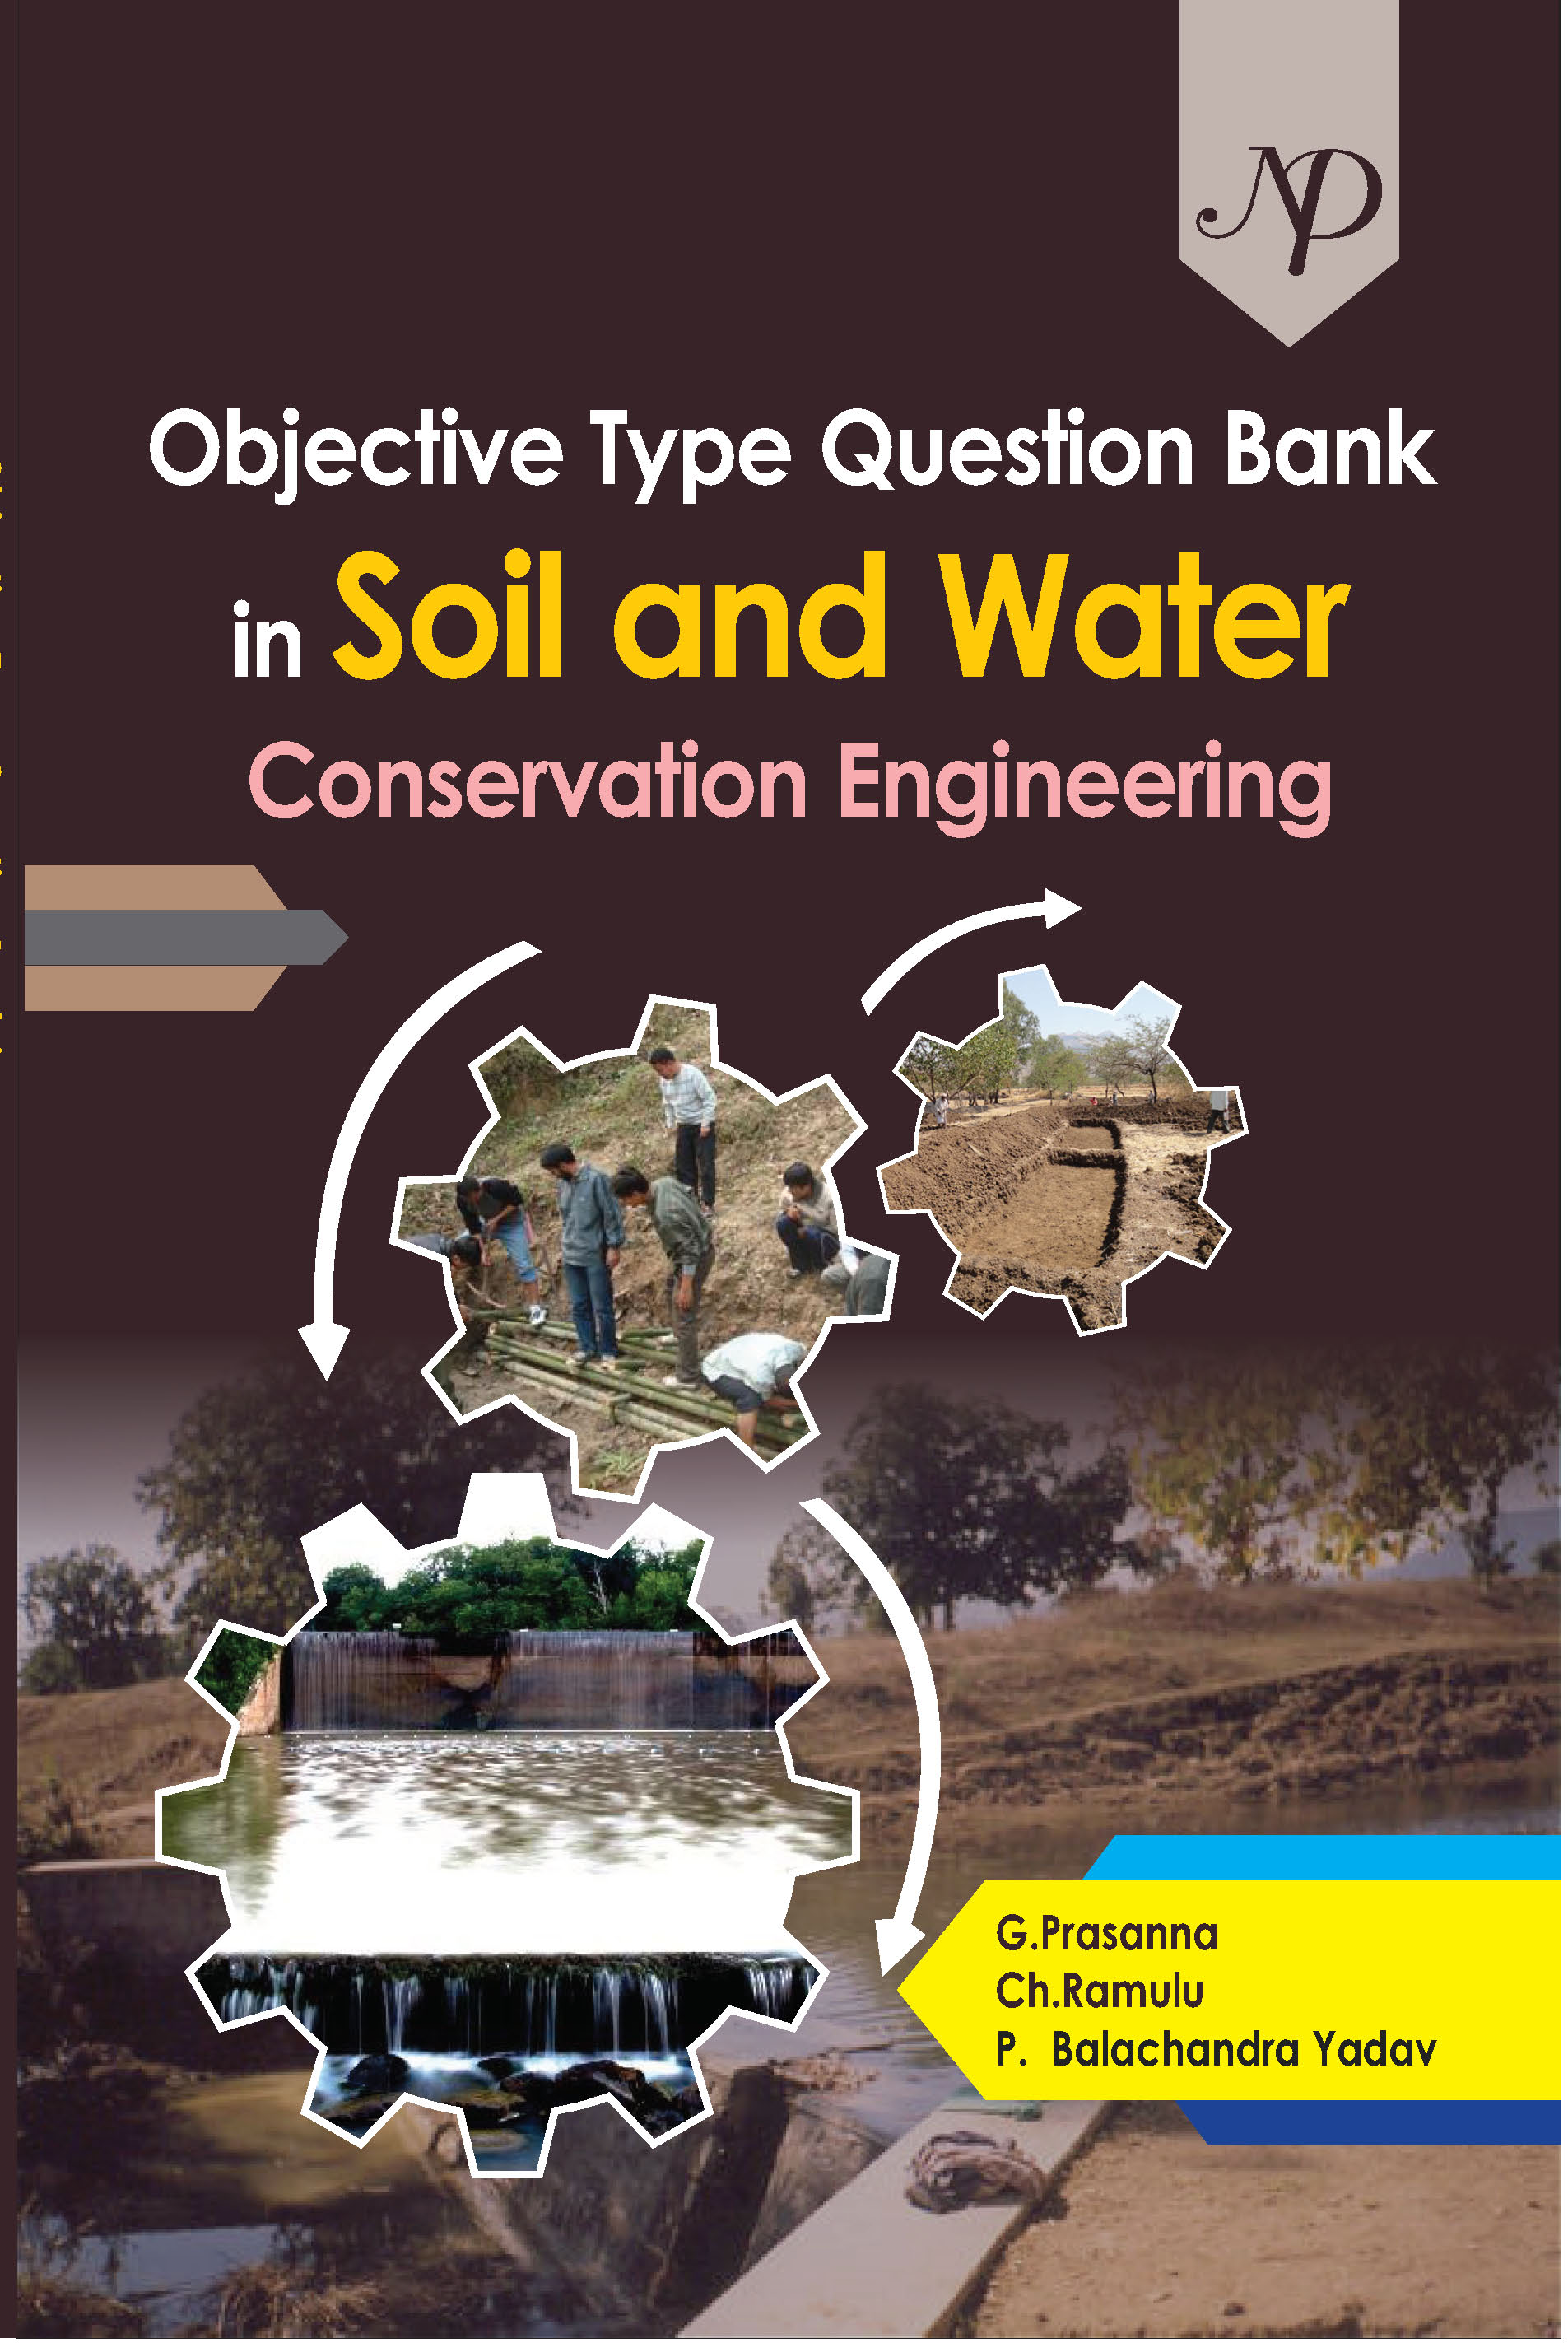 Objective Type Question Bank in Soil and Water Conservation Engineering